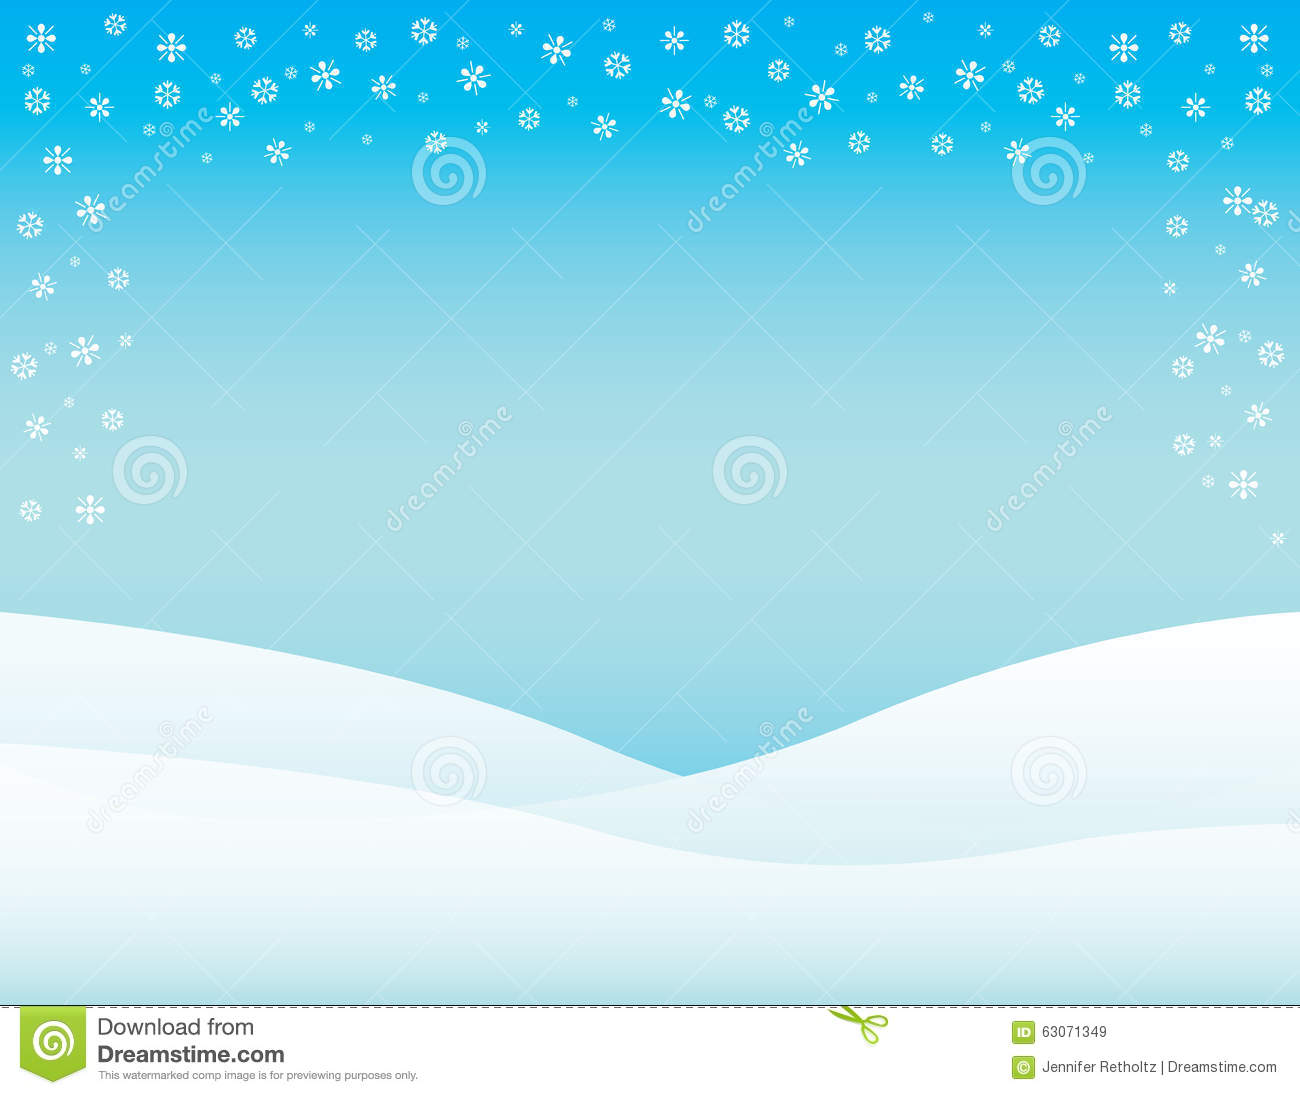 winter snowflake holiday frozen template background stock winter snowflake holiday frozen template background